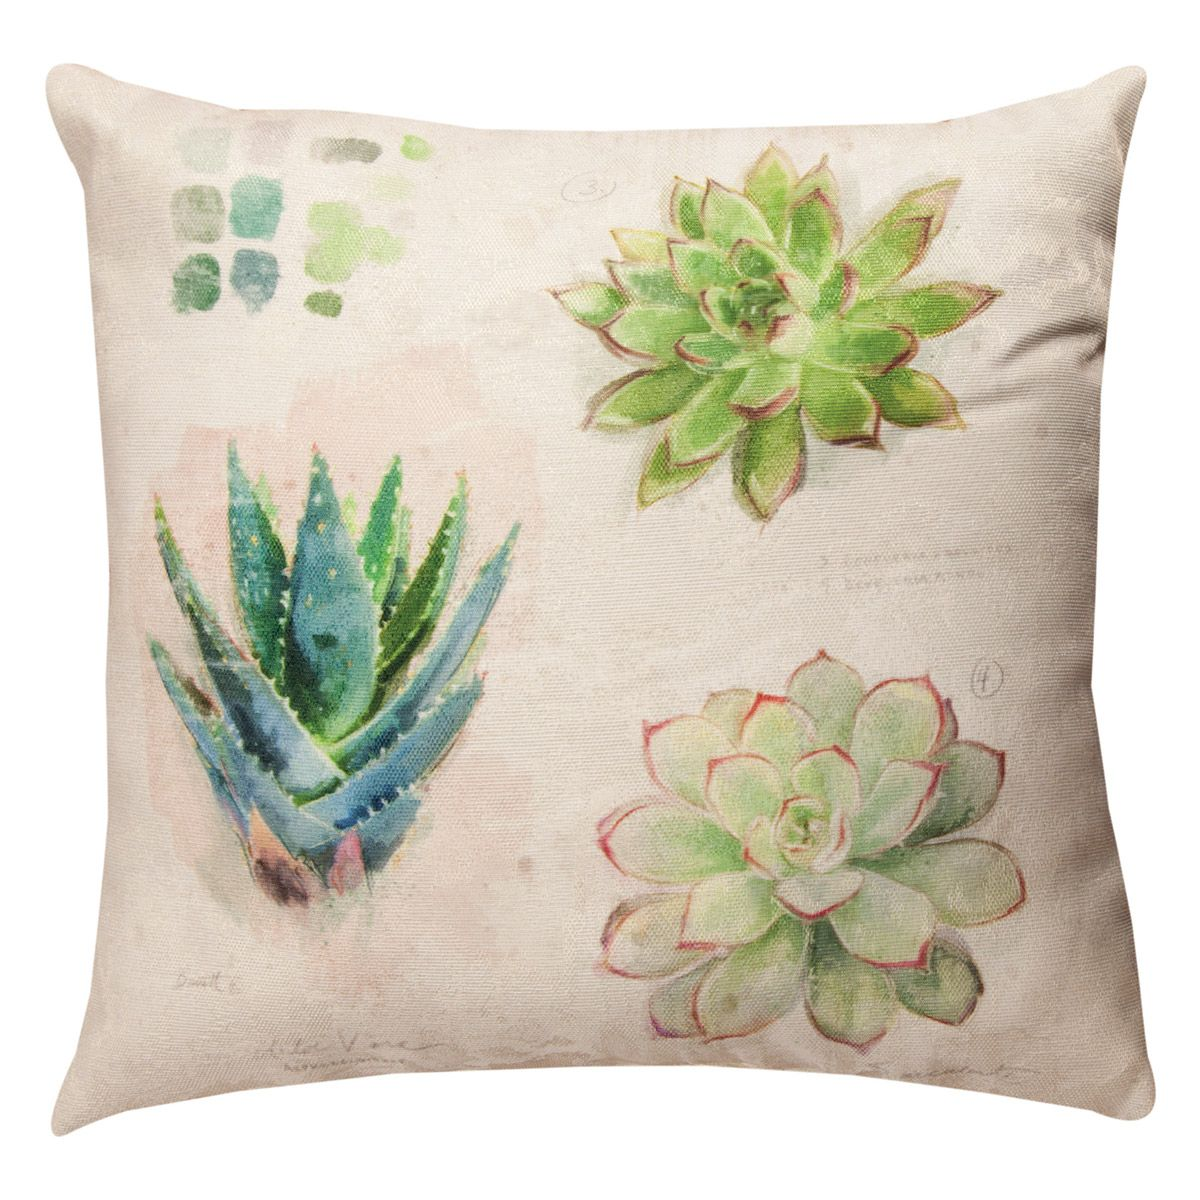 Succulent Collection Pillow - 18 x 18